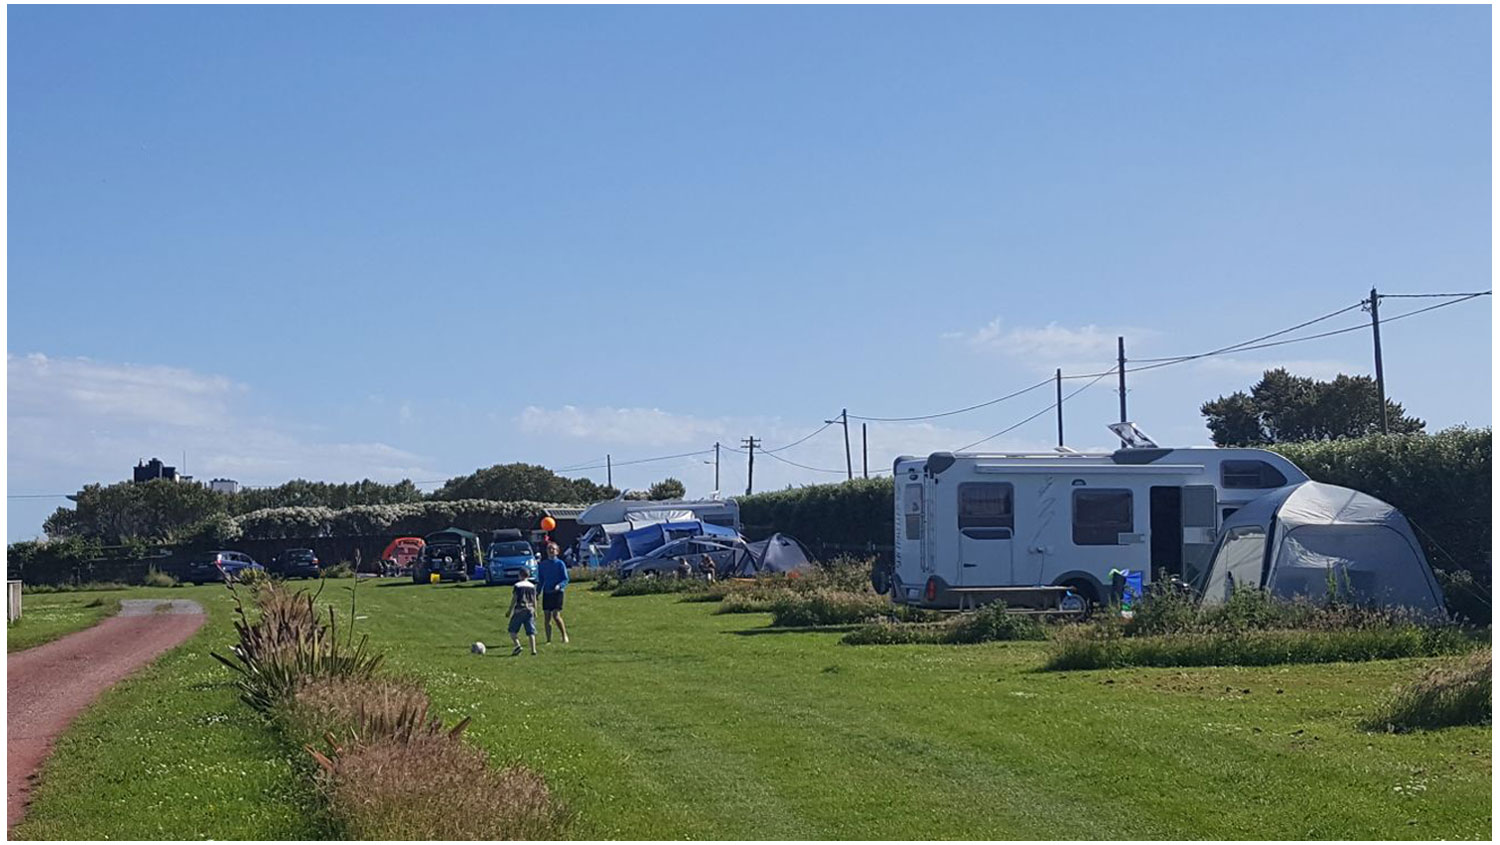 Motorhome1-Camping, Campervans, Motorhomes - Lynders Mobile Home Park, Portrane:Donabate, North County Dublin, Fingal